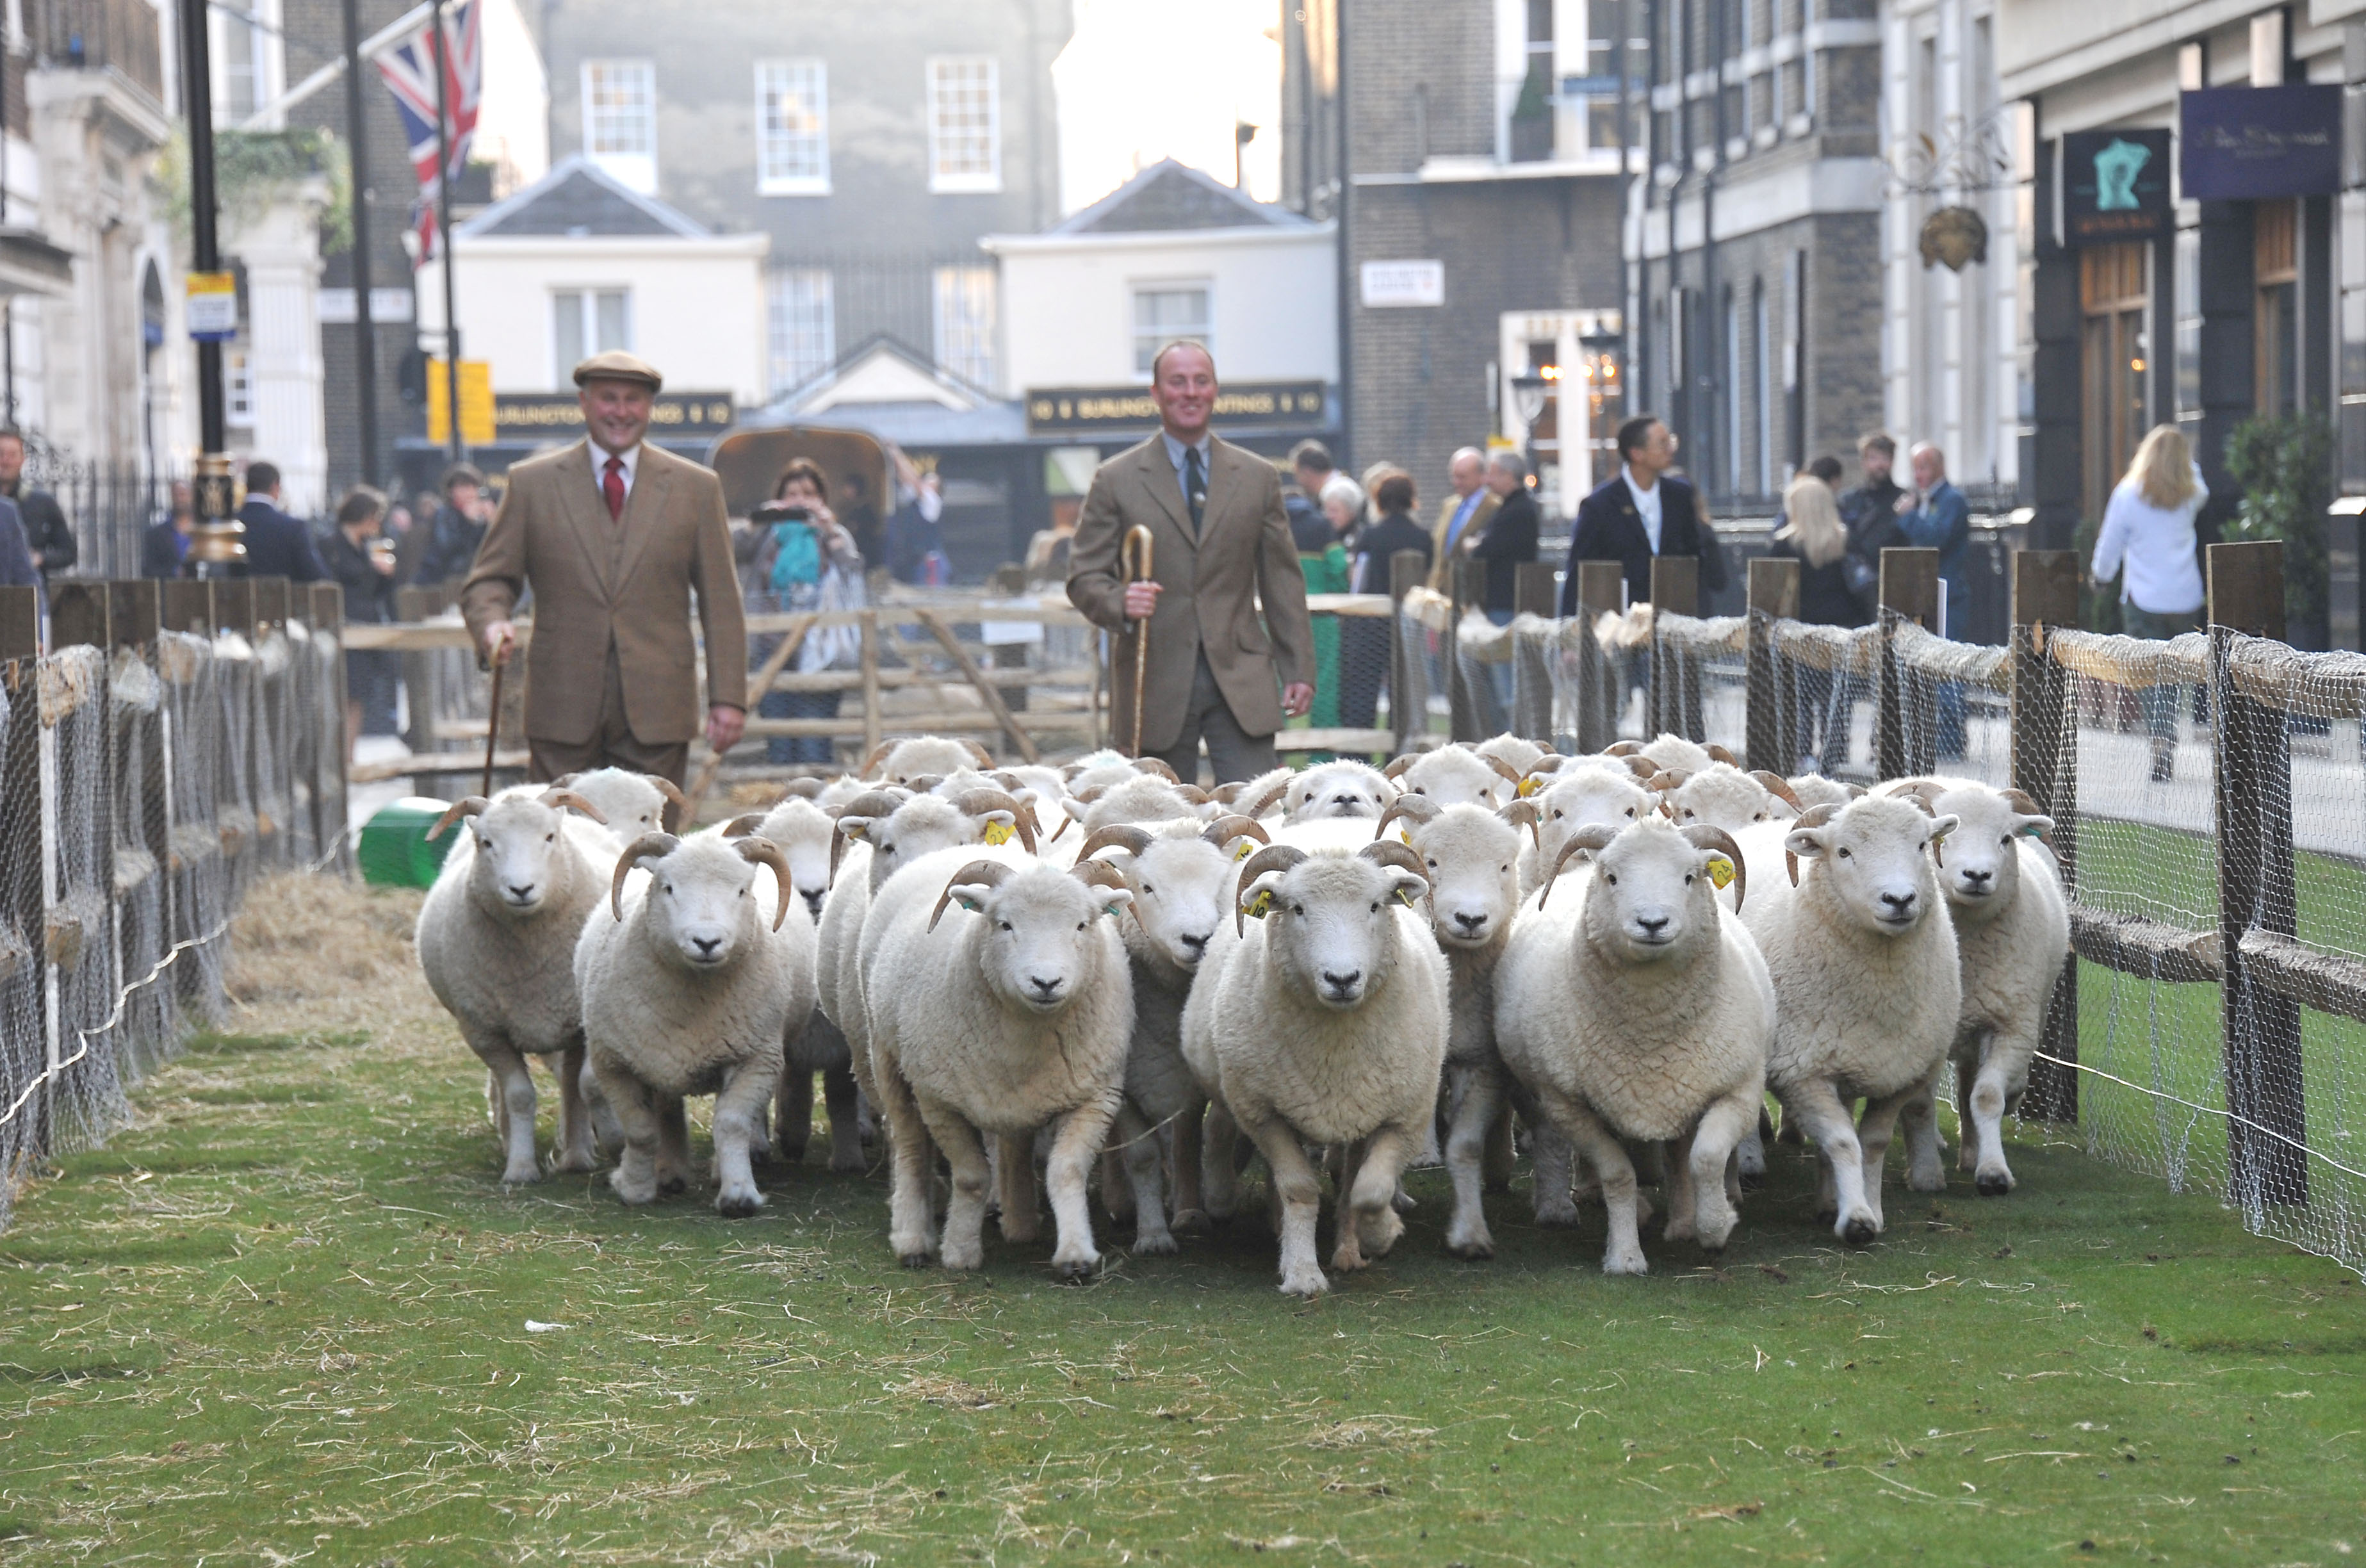 Farmers Harry Parker, Ben Blackmore Dozens of Sheep grace the Iconic Saville Row to promote the launch of Wool Week and Campaign for Wool.